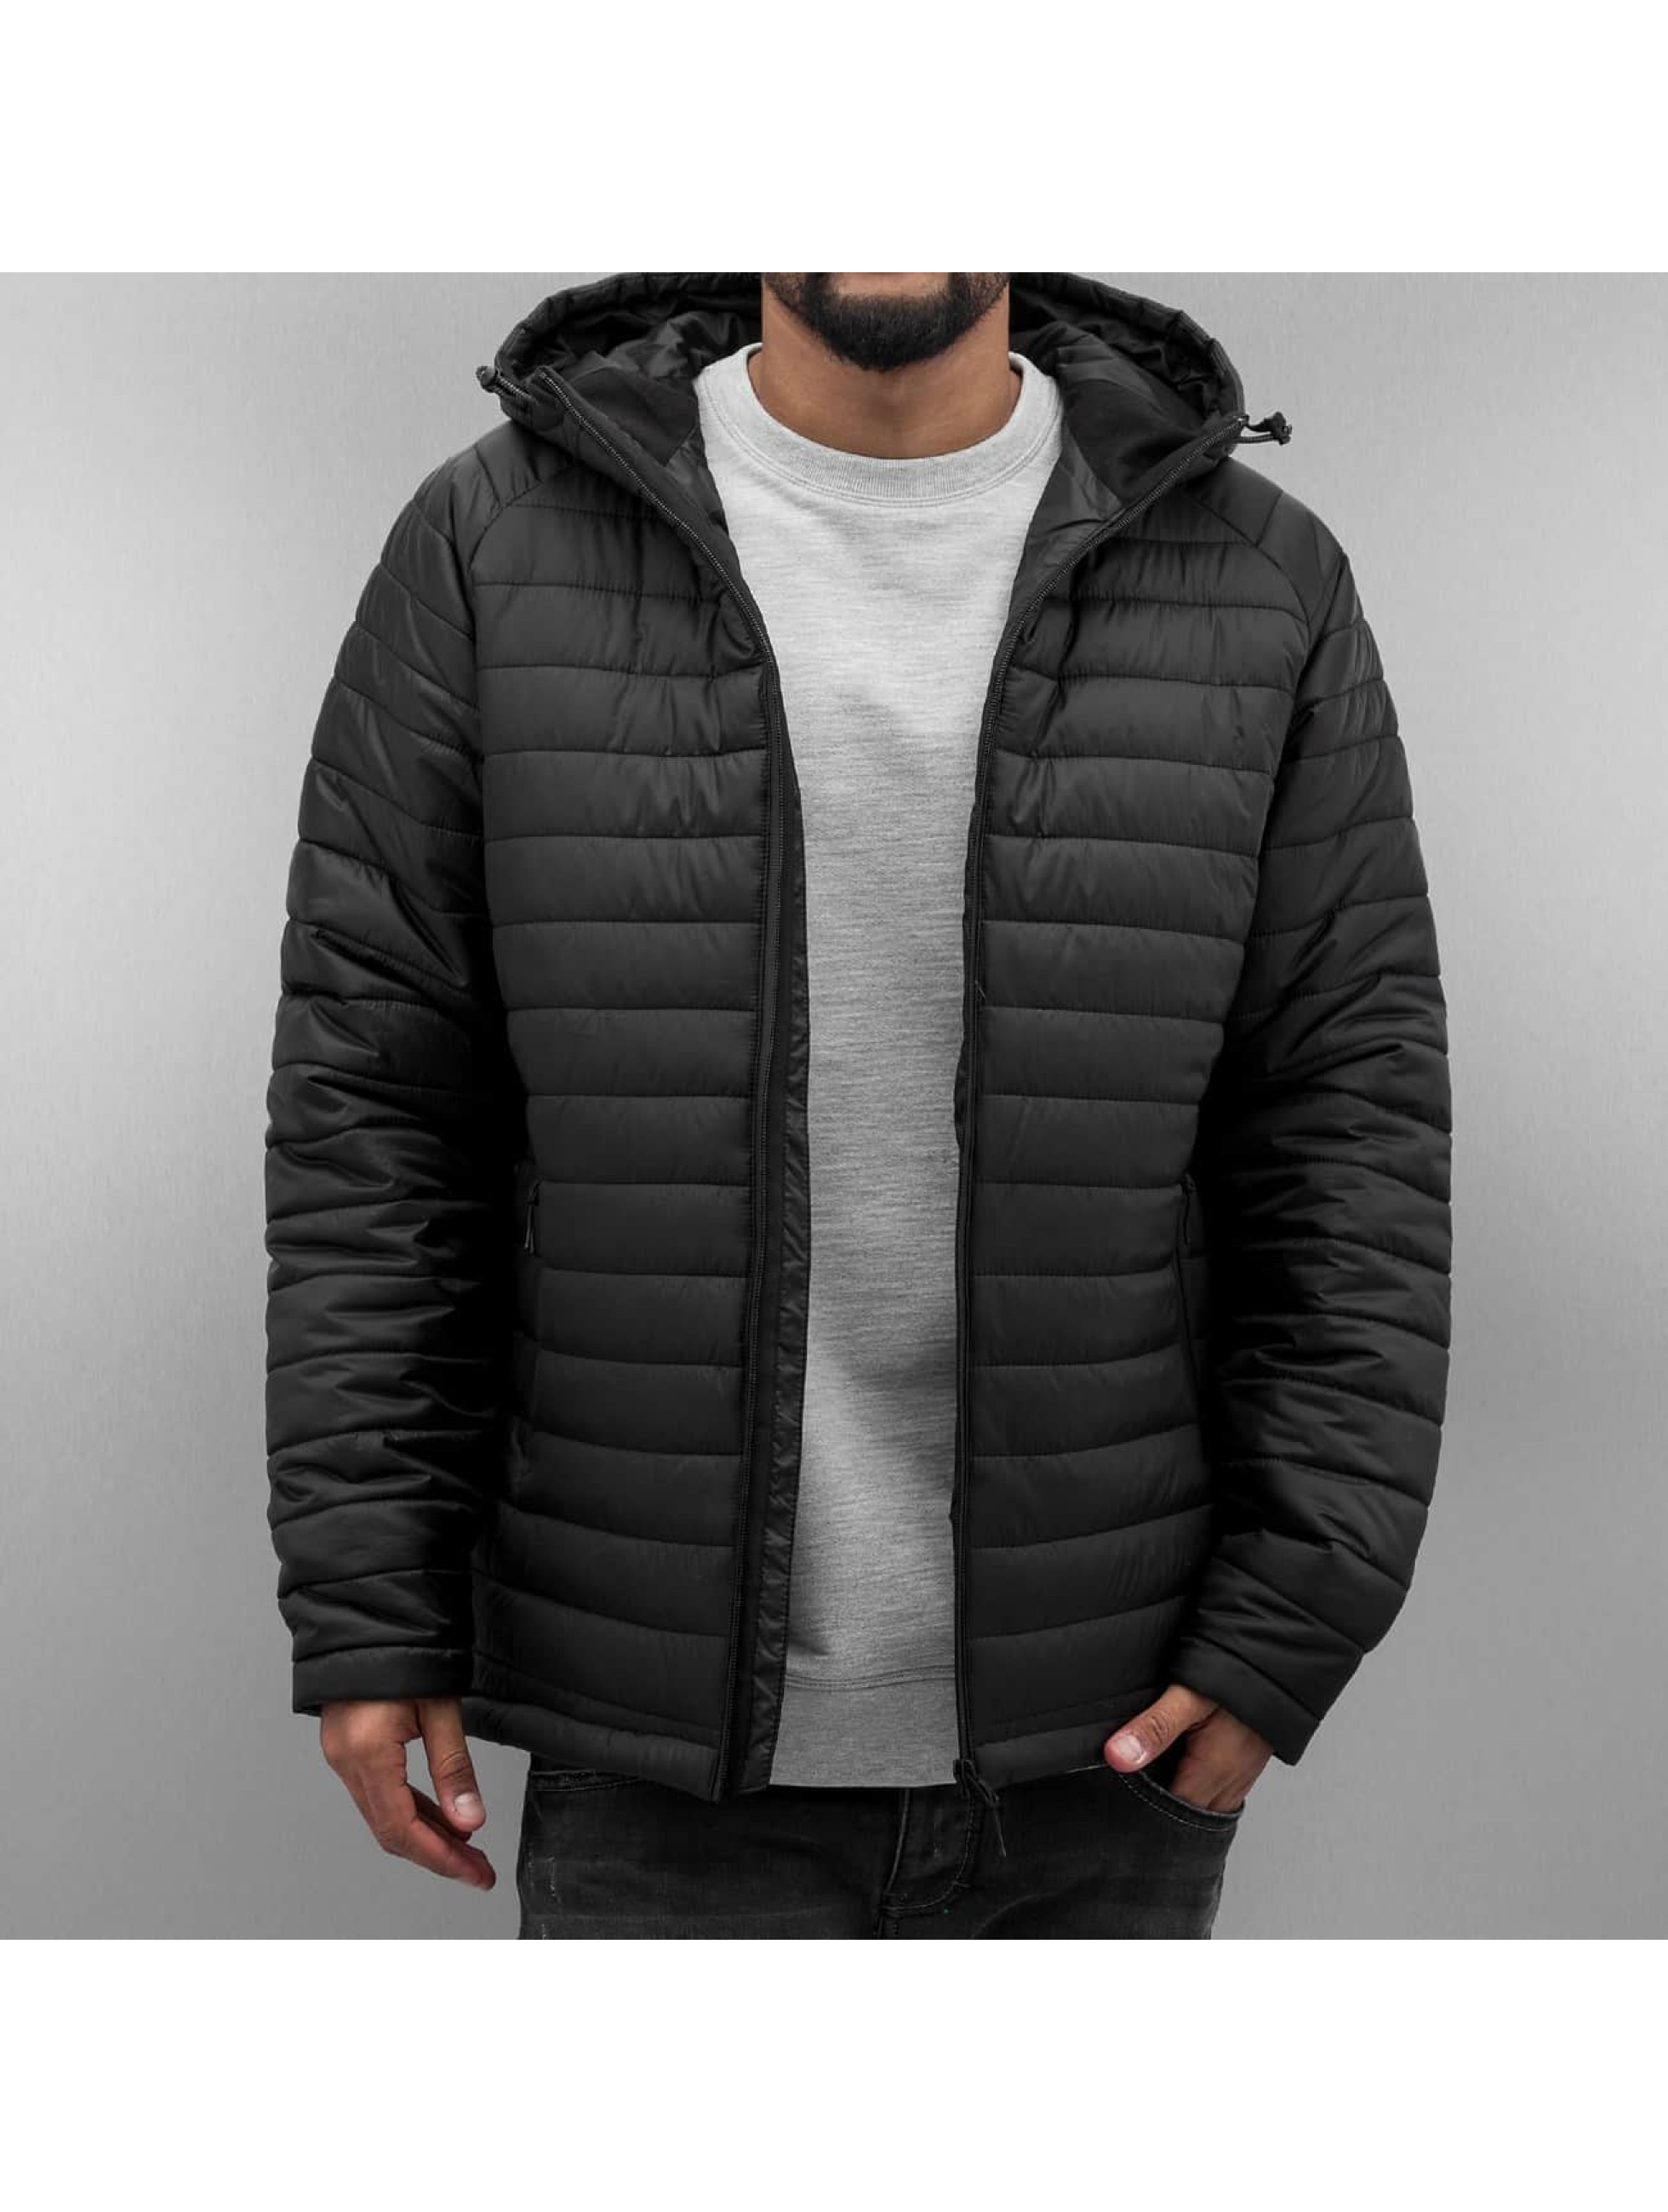 Winterjacke Core Spint in schwarz